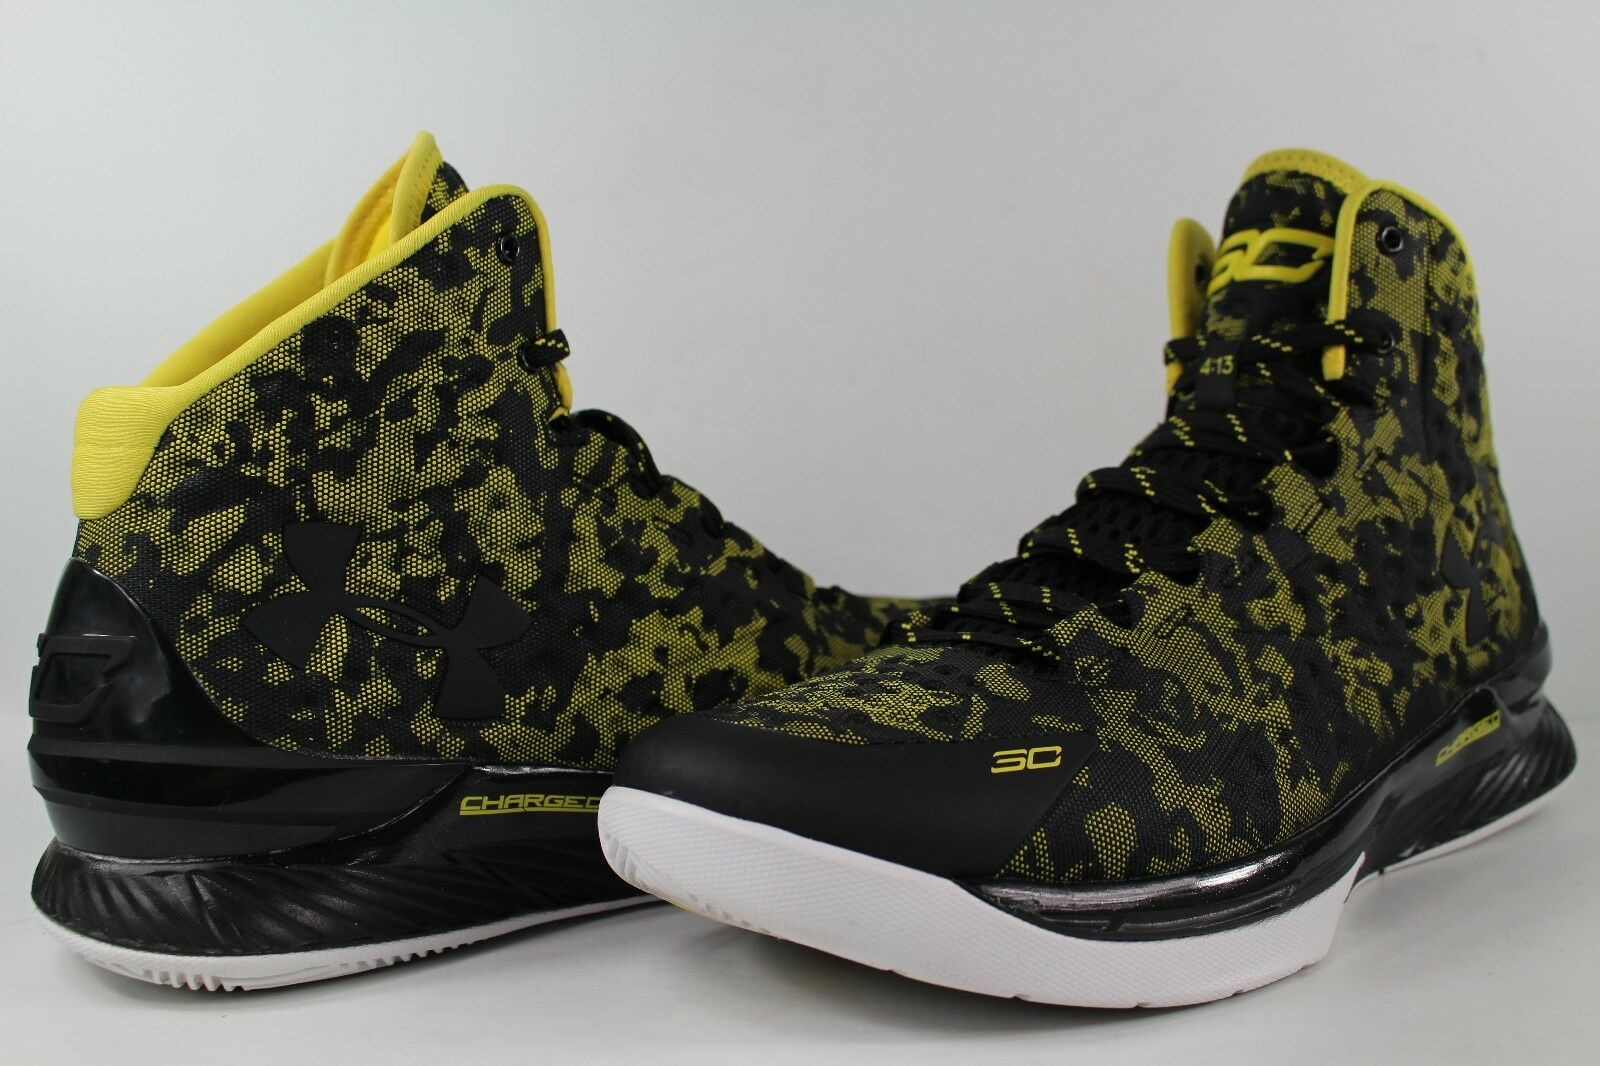 timeless design 8e148 8834e Under Armour Curry 1 Taxi Away Black White Size Size Size 12 1258723-001  5929f8